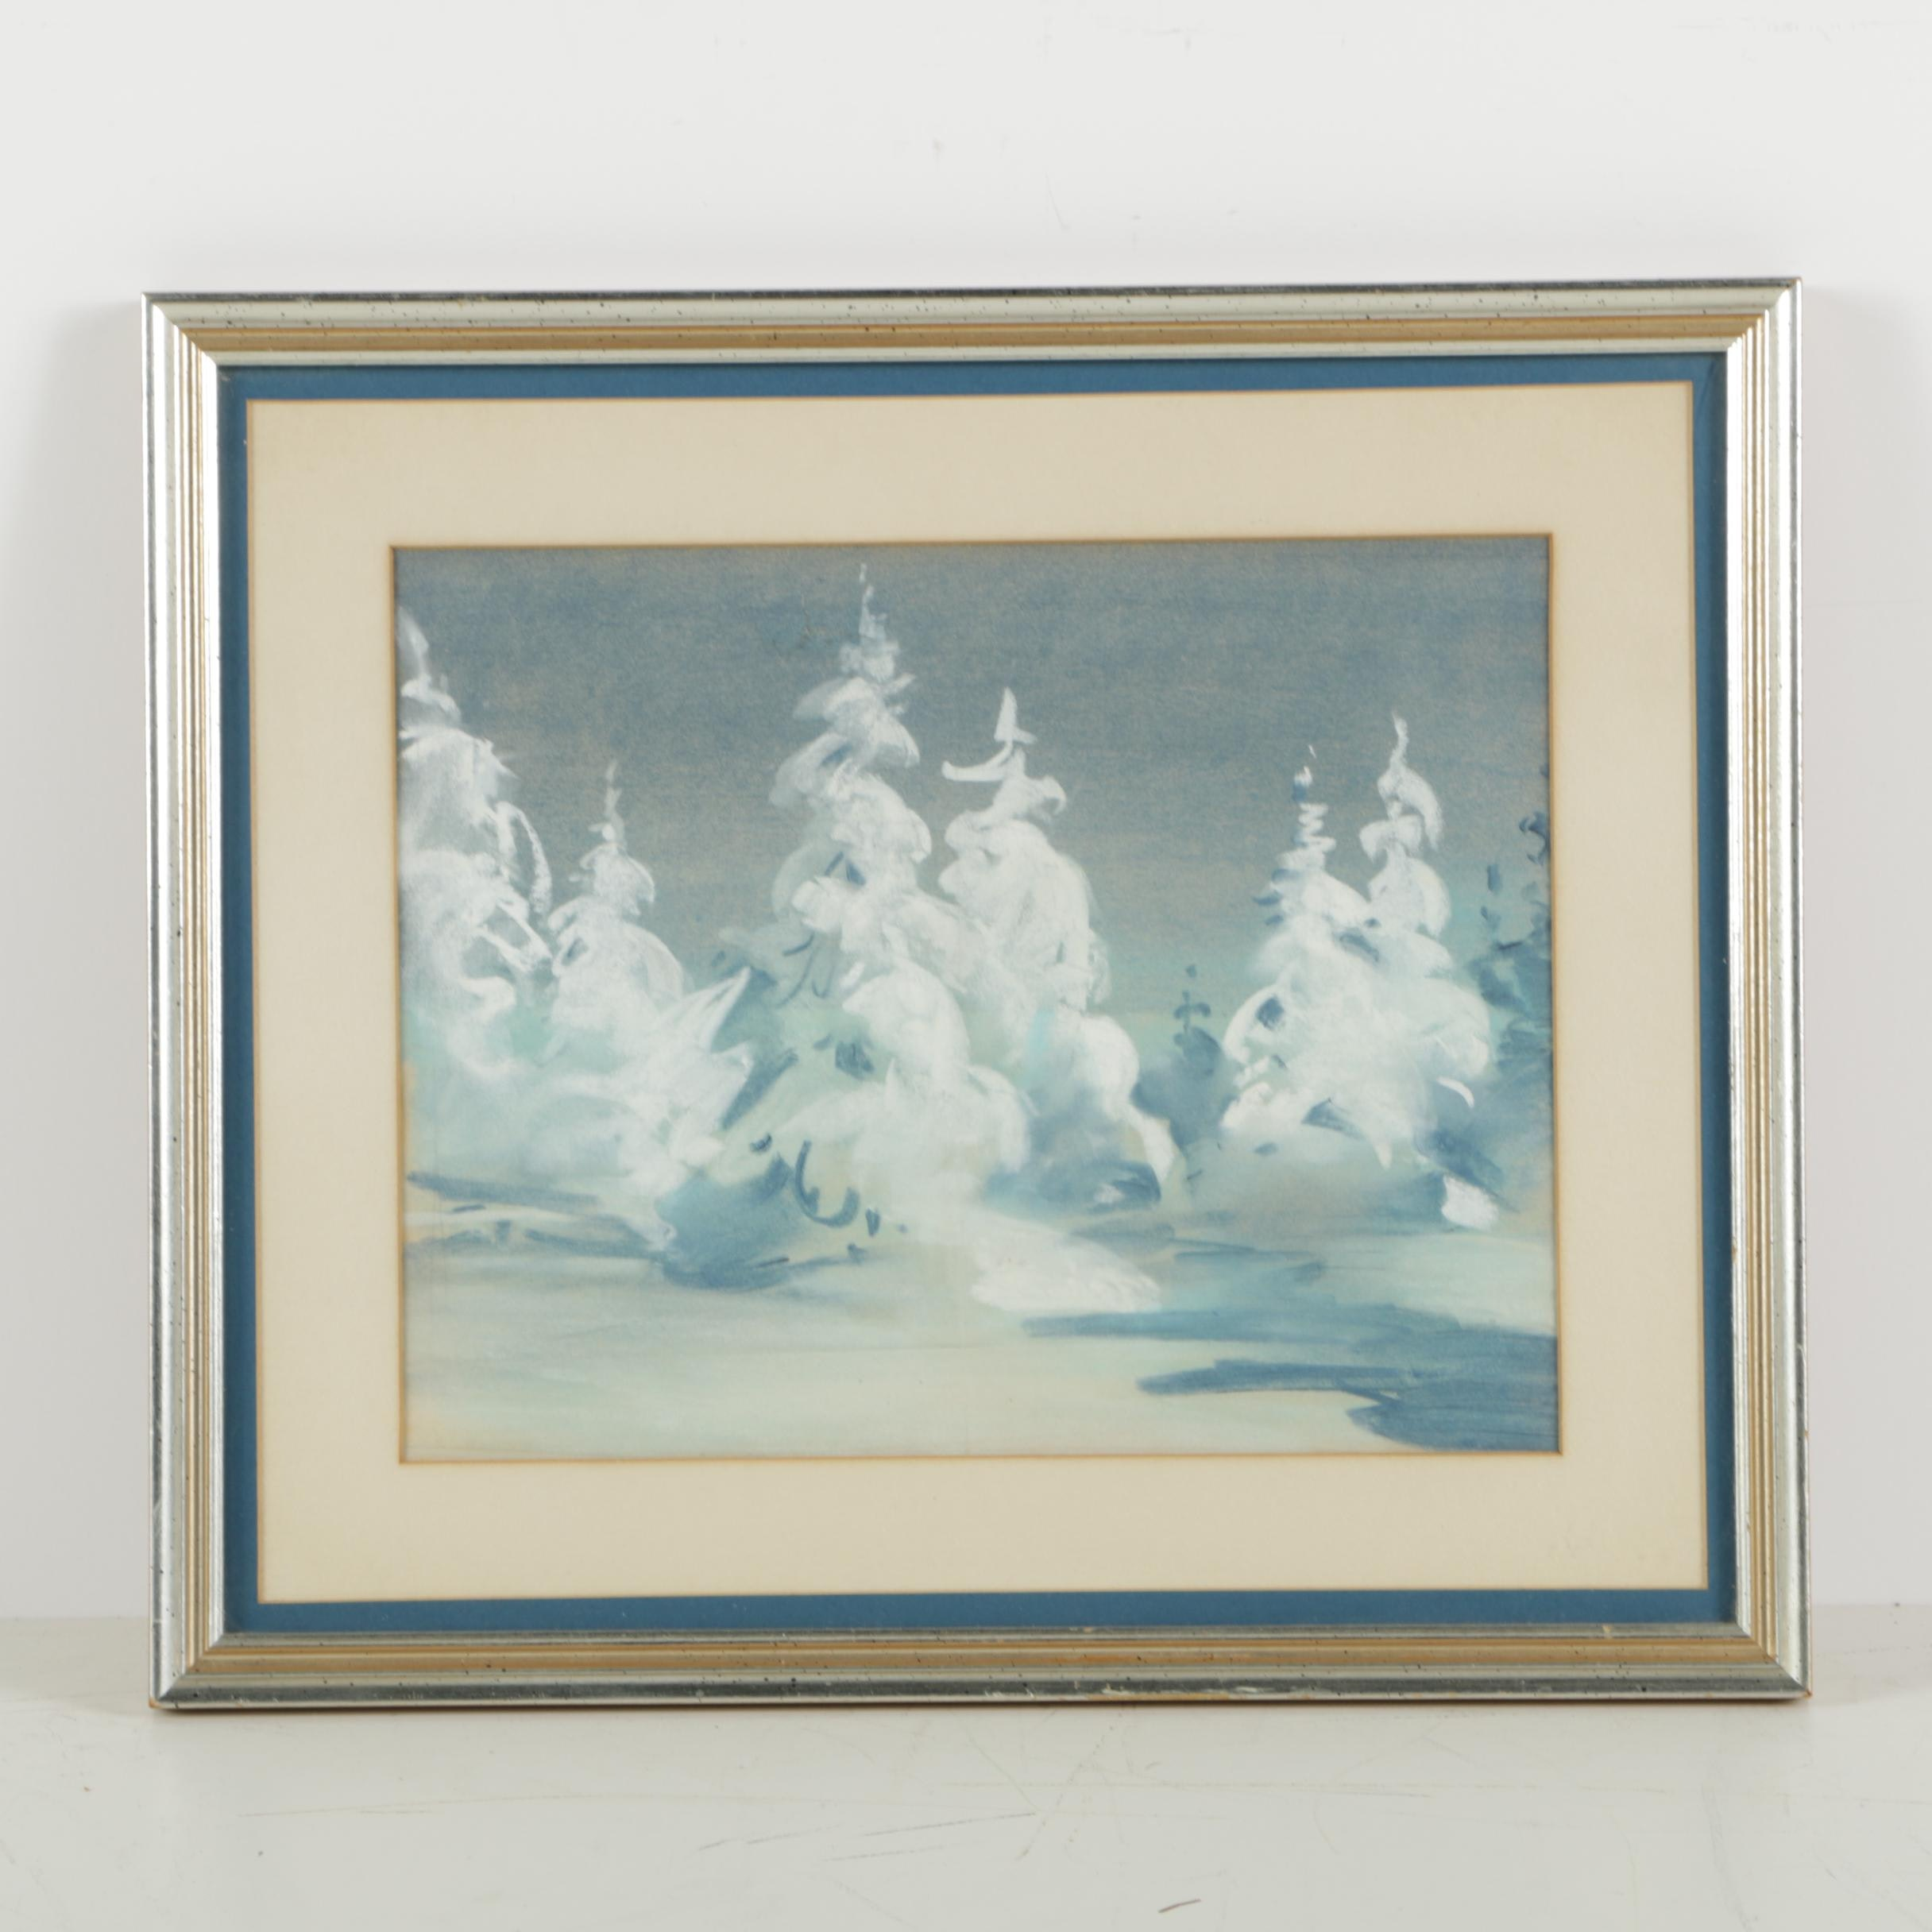 Howard Connolly Pastel Drawing of a Winter Scene